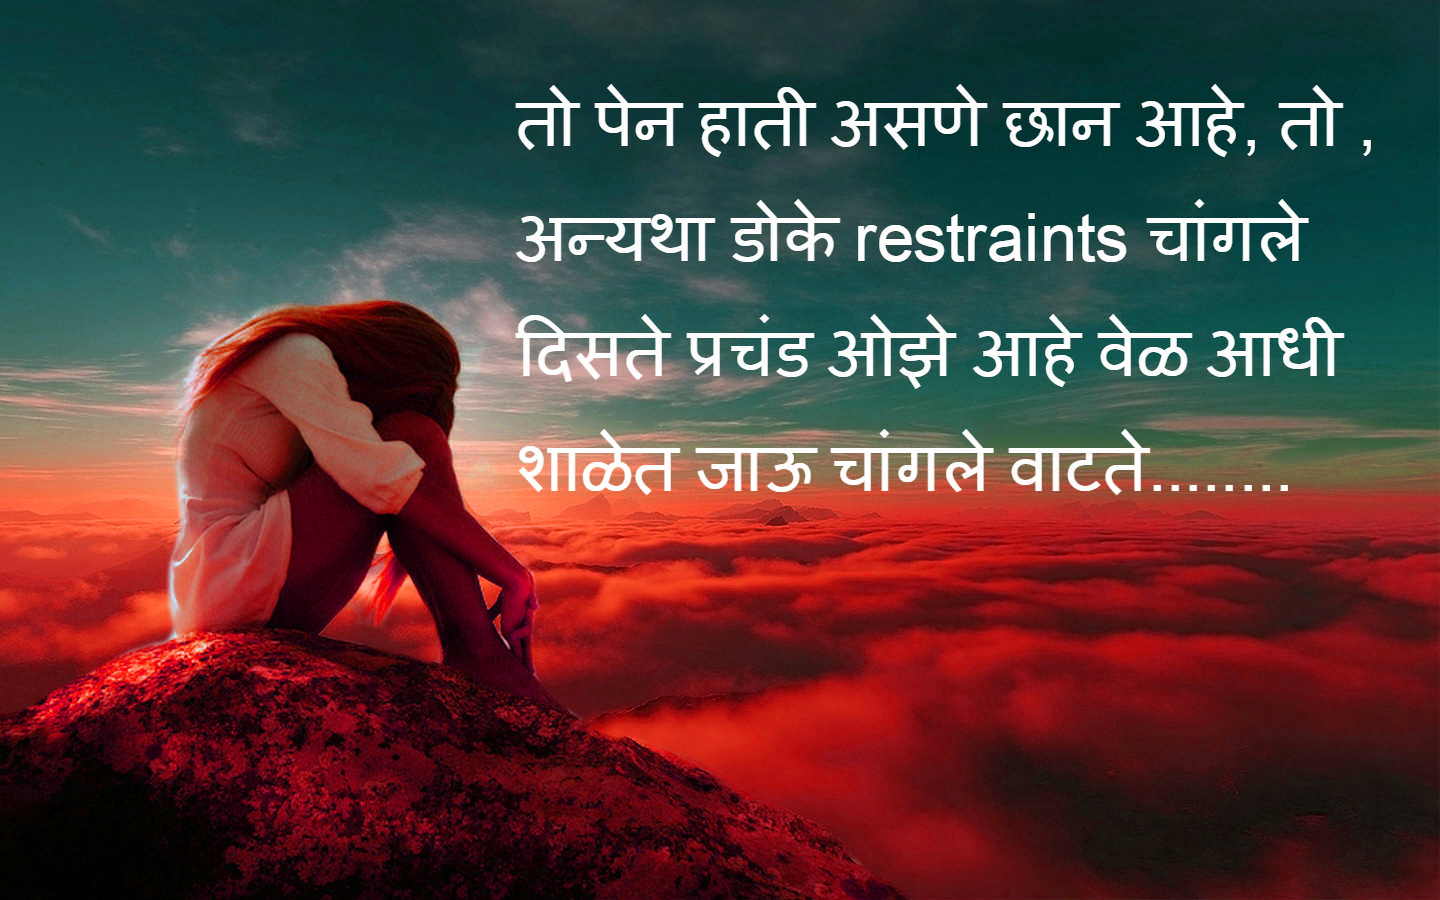 Hindi Sad Love Romantic Shayari Wallpaper Pictures Images For Facebook